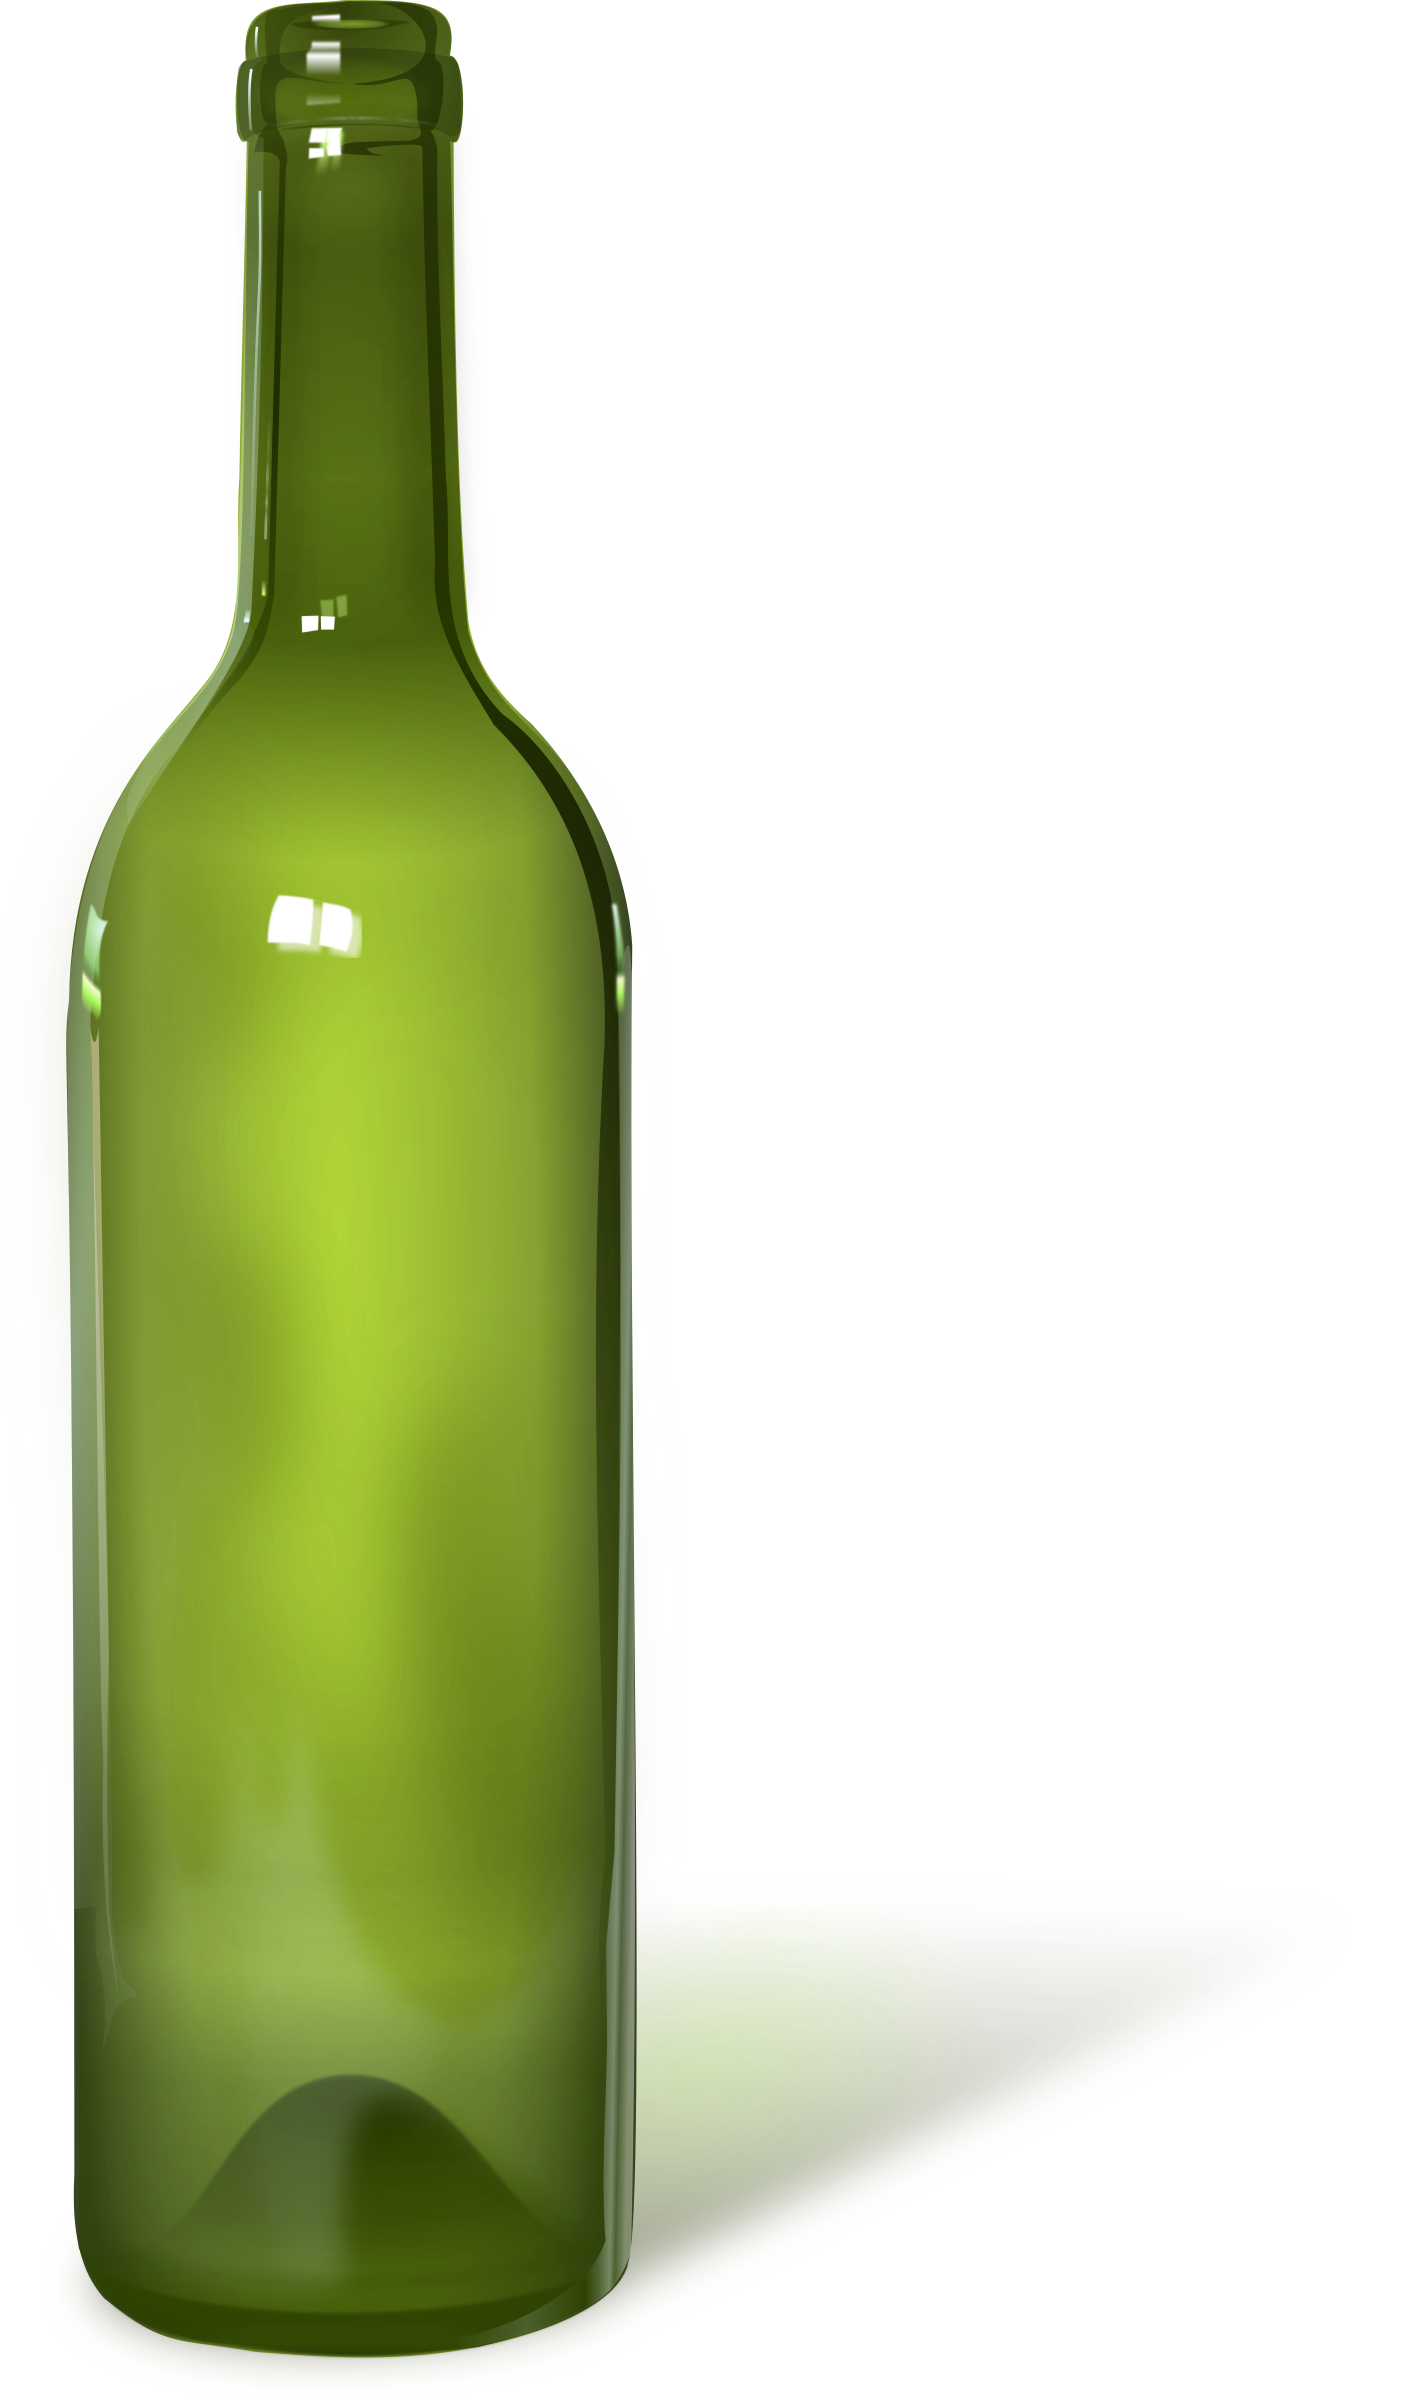 Bottle - detailed (with shadow) by metalorg